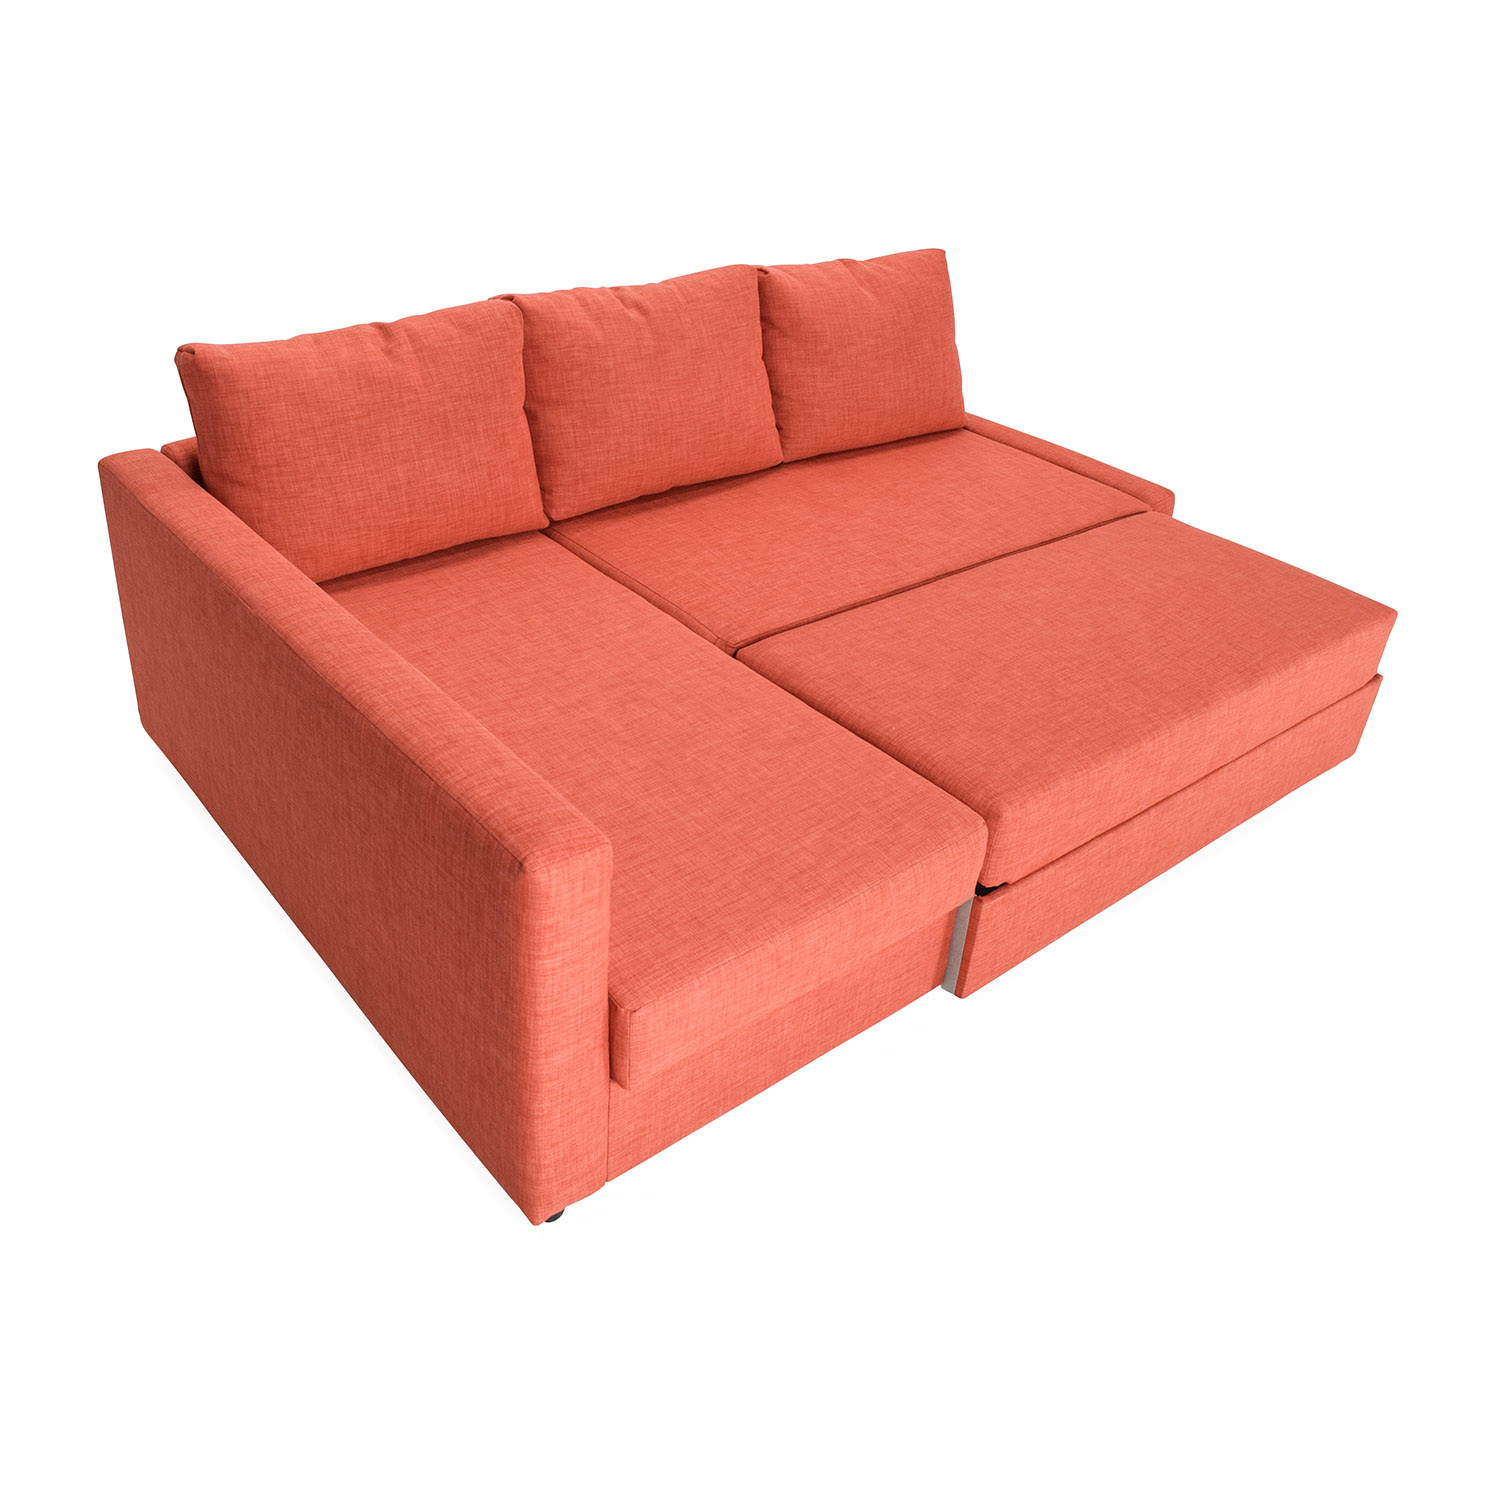 friheten sofa couch marshmallow flip open canada 49 off ikea bed with chaise sofas